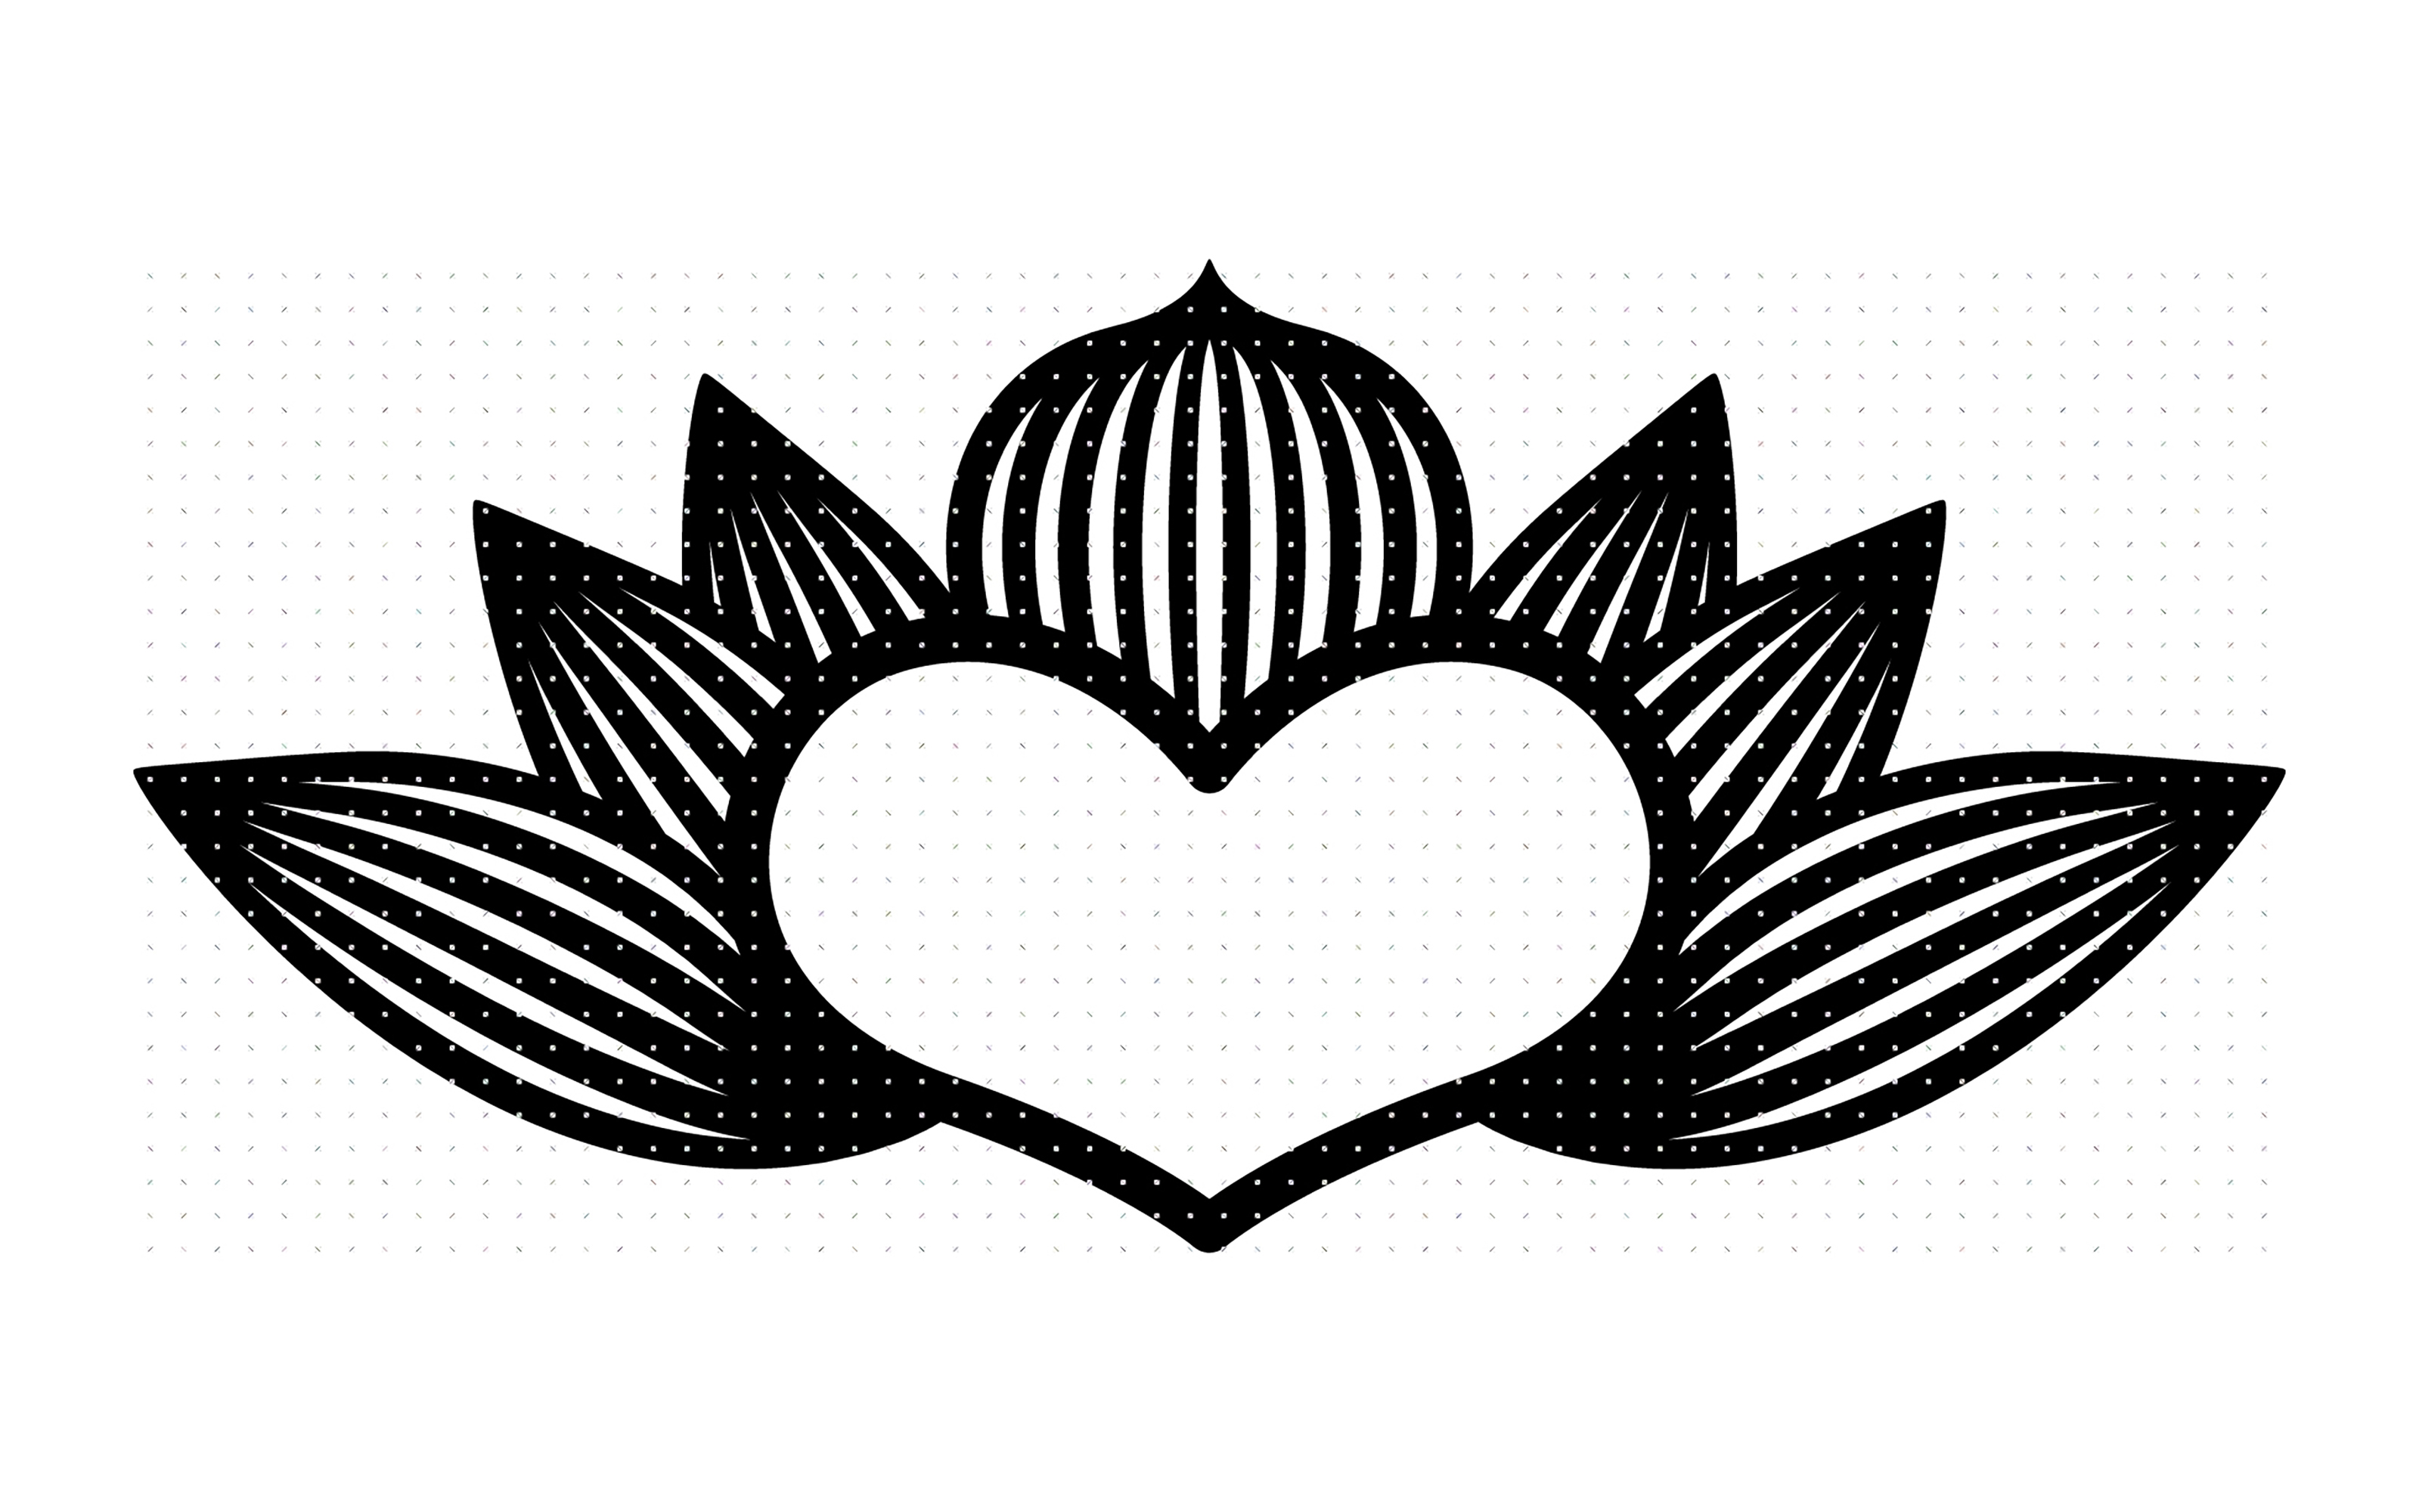 Download Free Lotus Heart Flower Graphic By Crafteroks Creative Fabrica for Cricut Explore, Silhouette and other cutting machines.